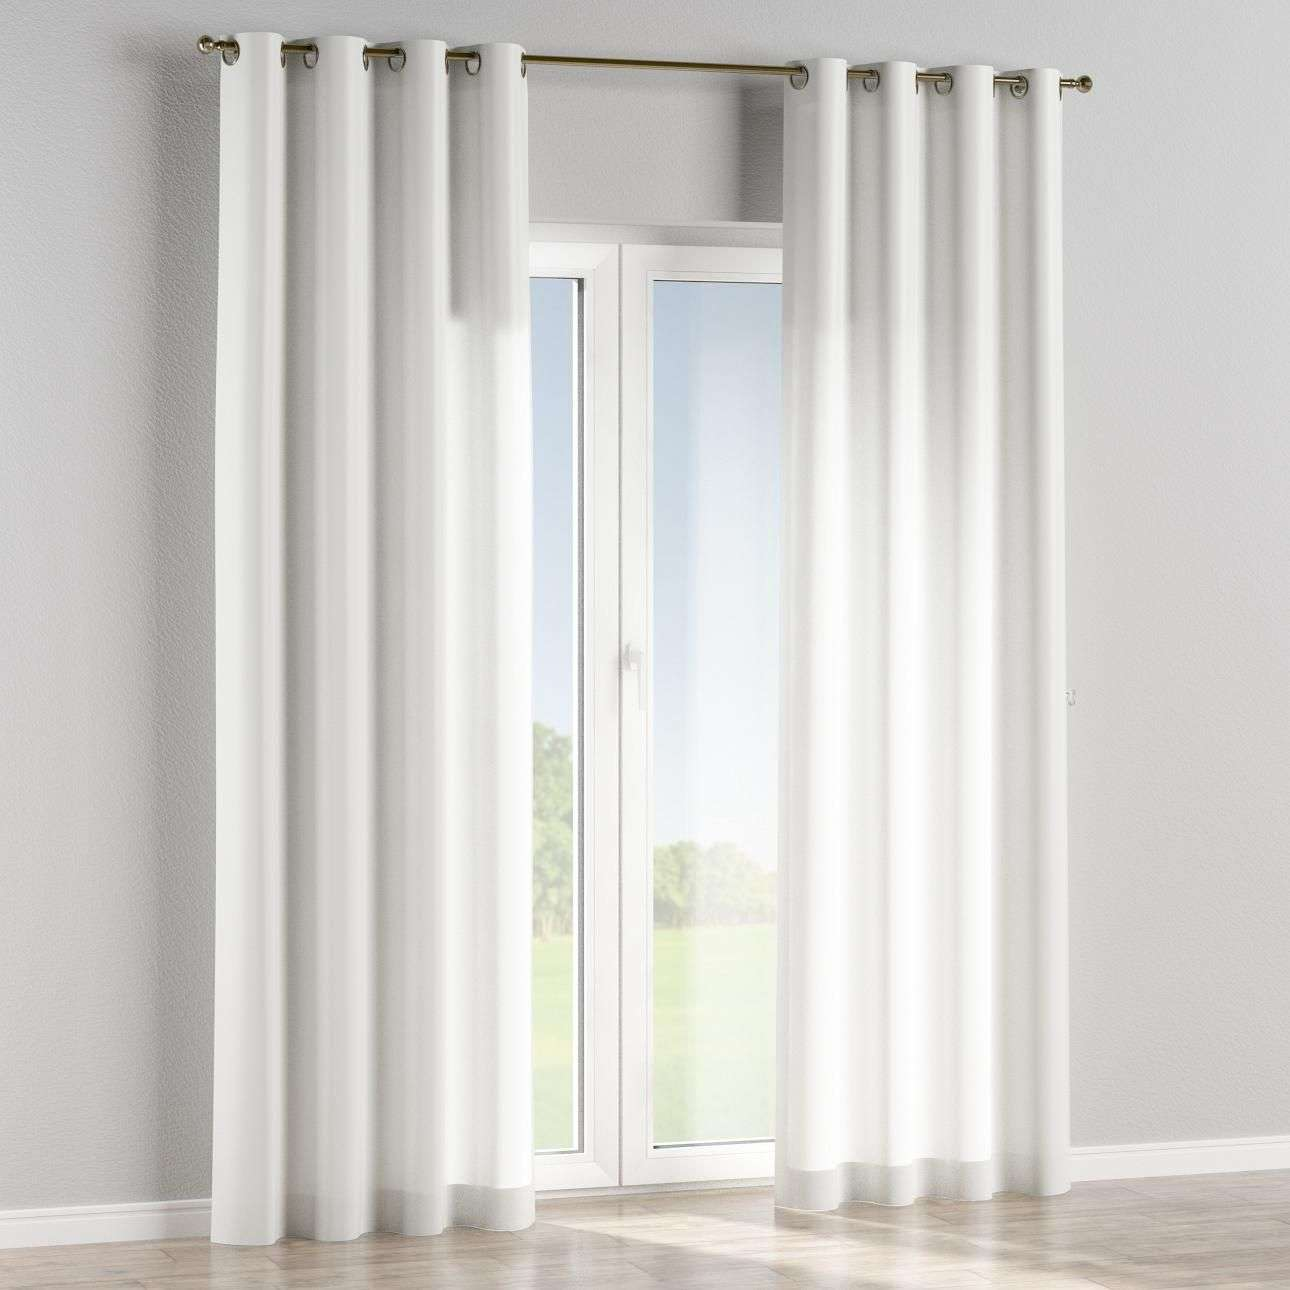 Eyelet curtains in collection Milano, fabric: 150-37